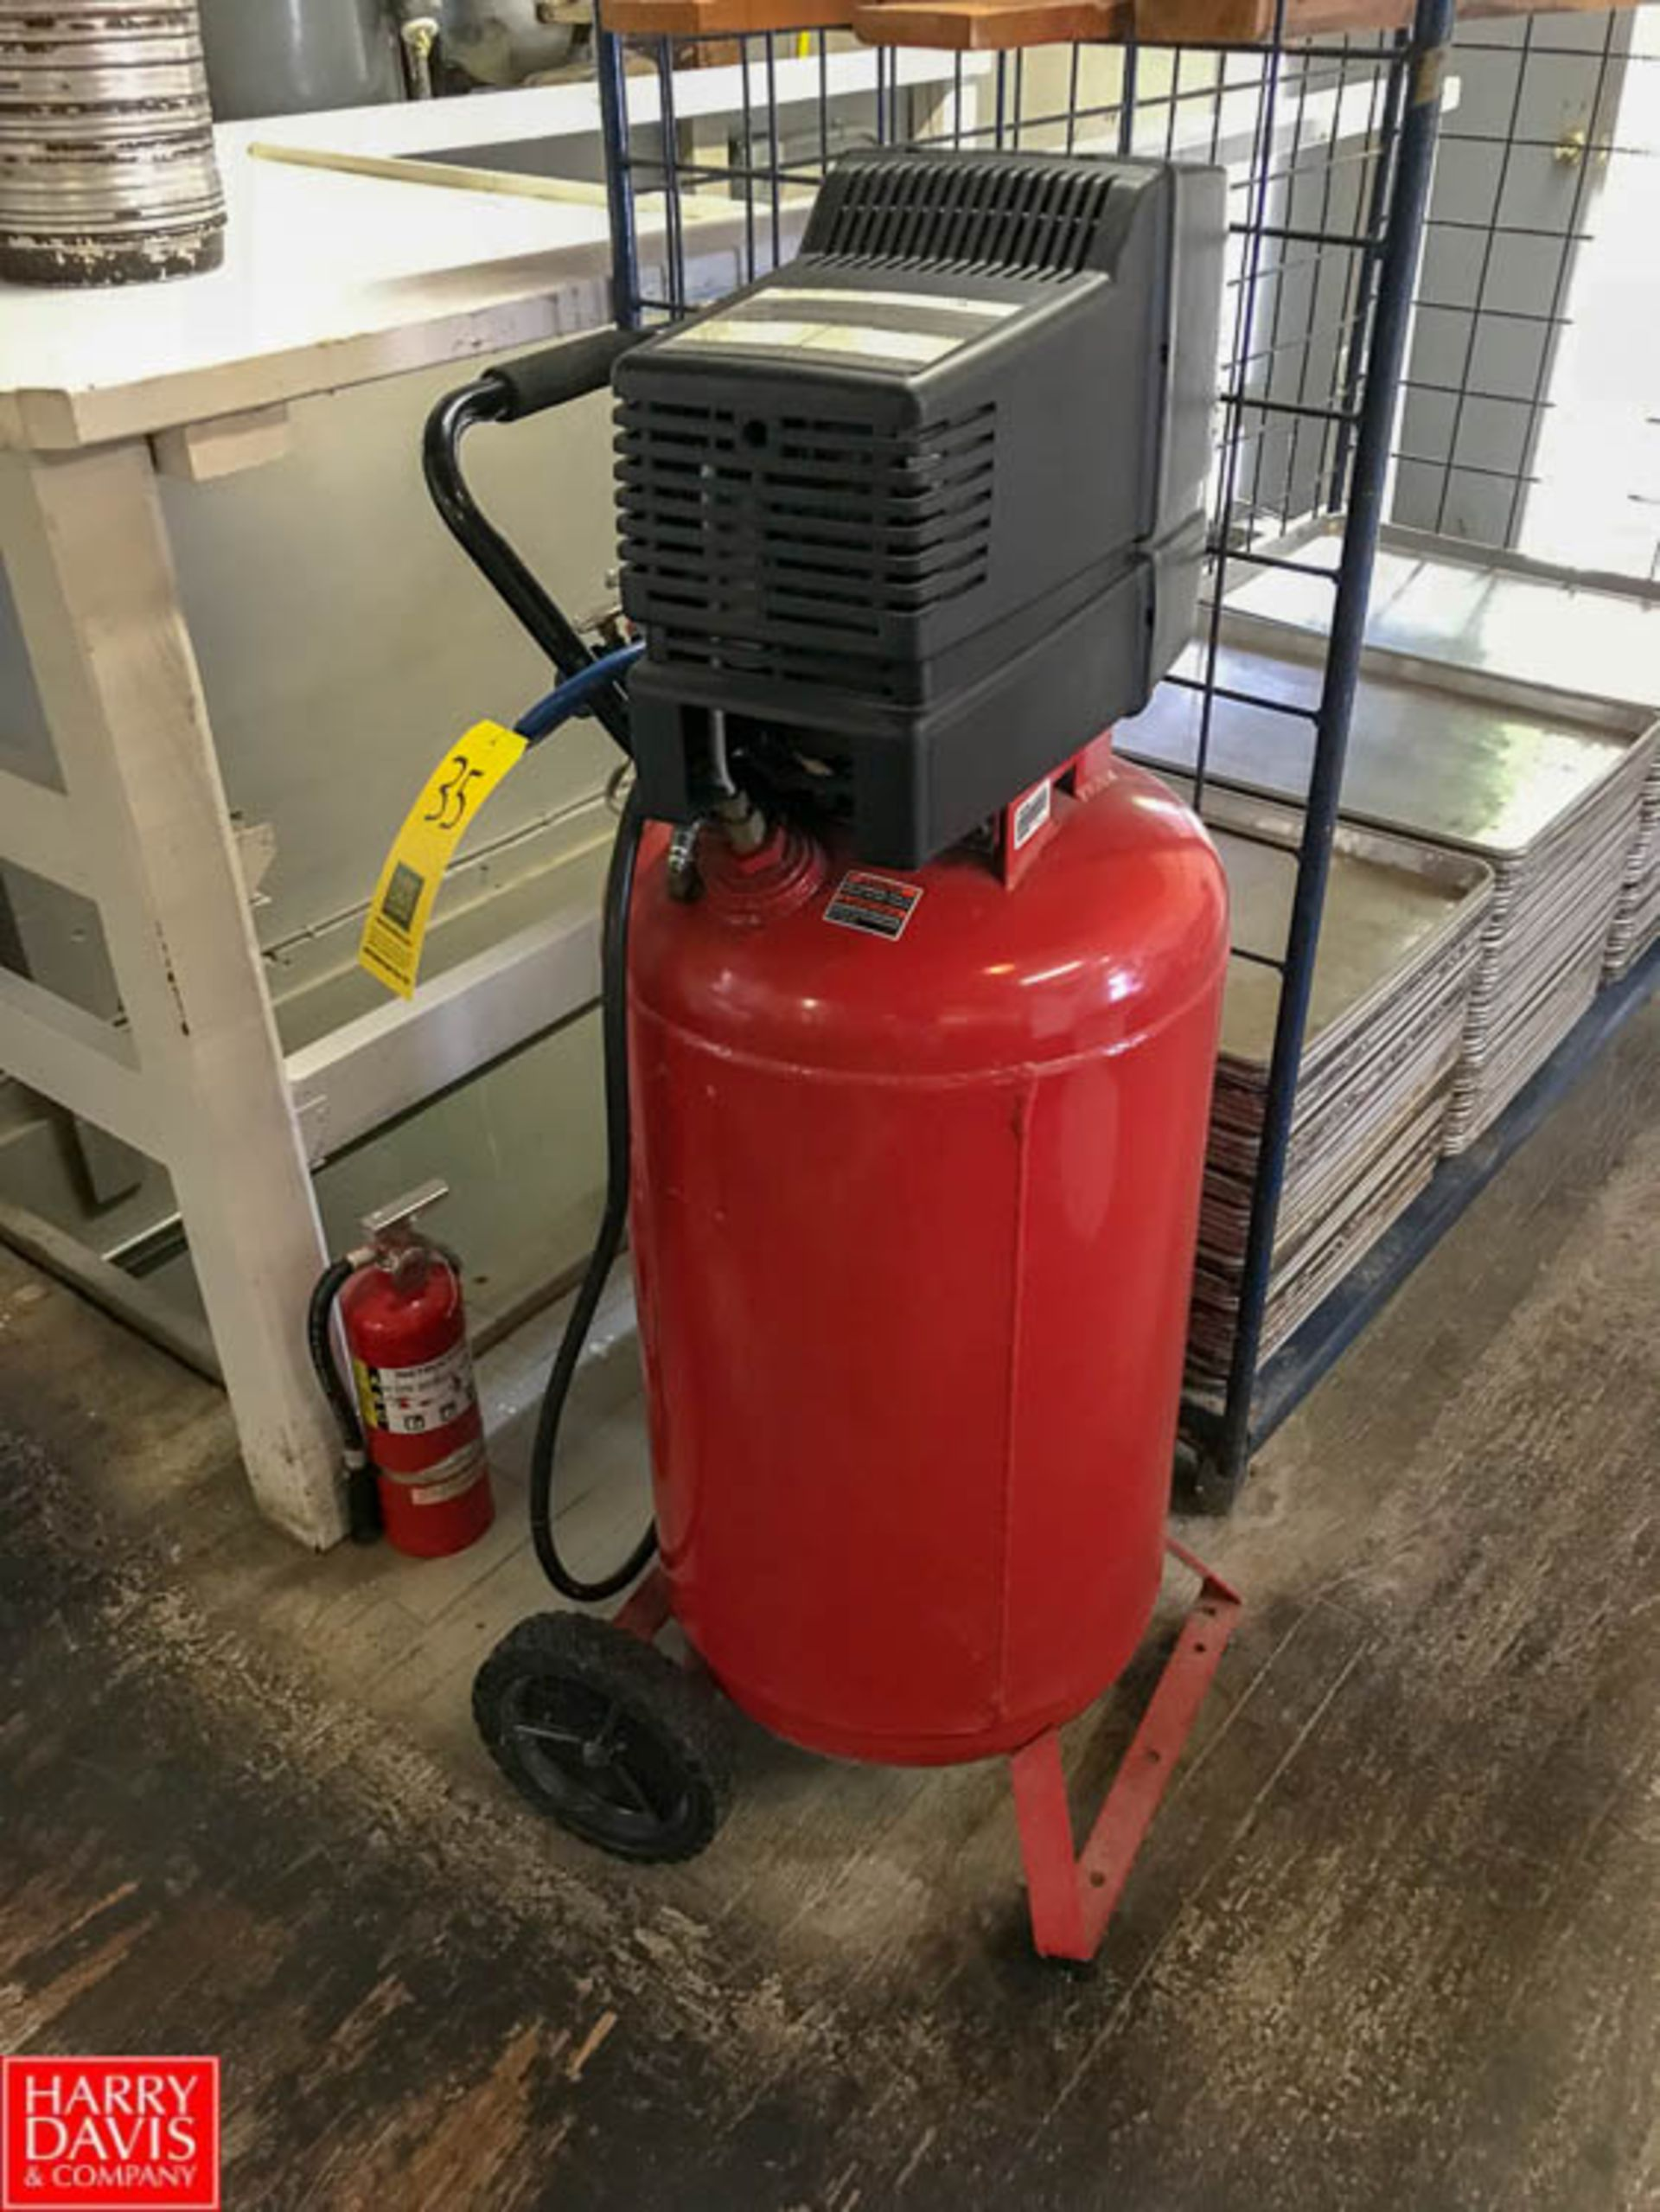 Lot 35 - Craftsman 5.5 HP Oil-Free Air Compressor Model 919.165230 with 25 Gallon Tank, Mounted on Portable